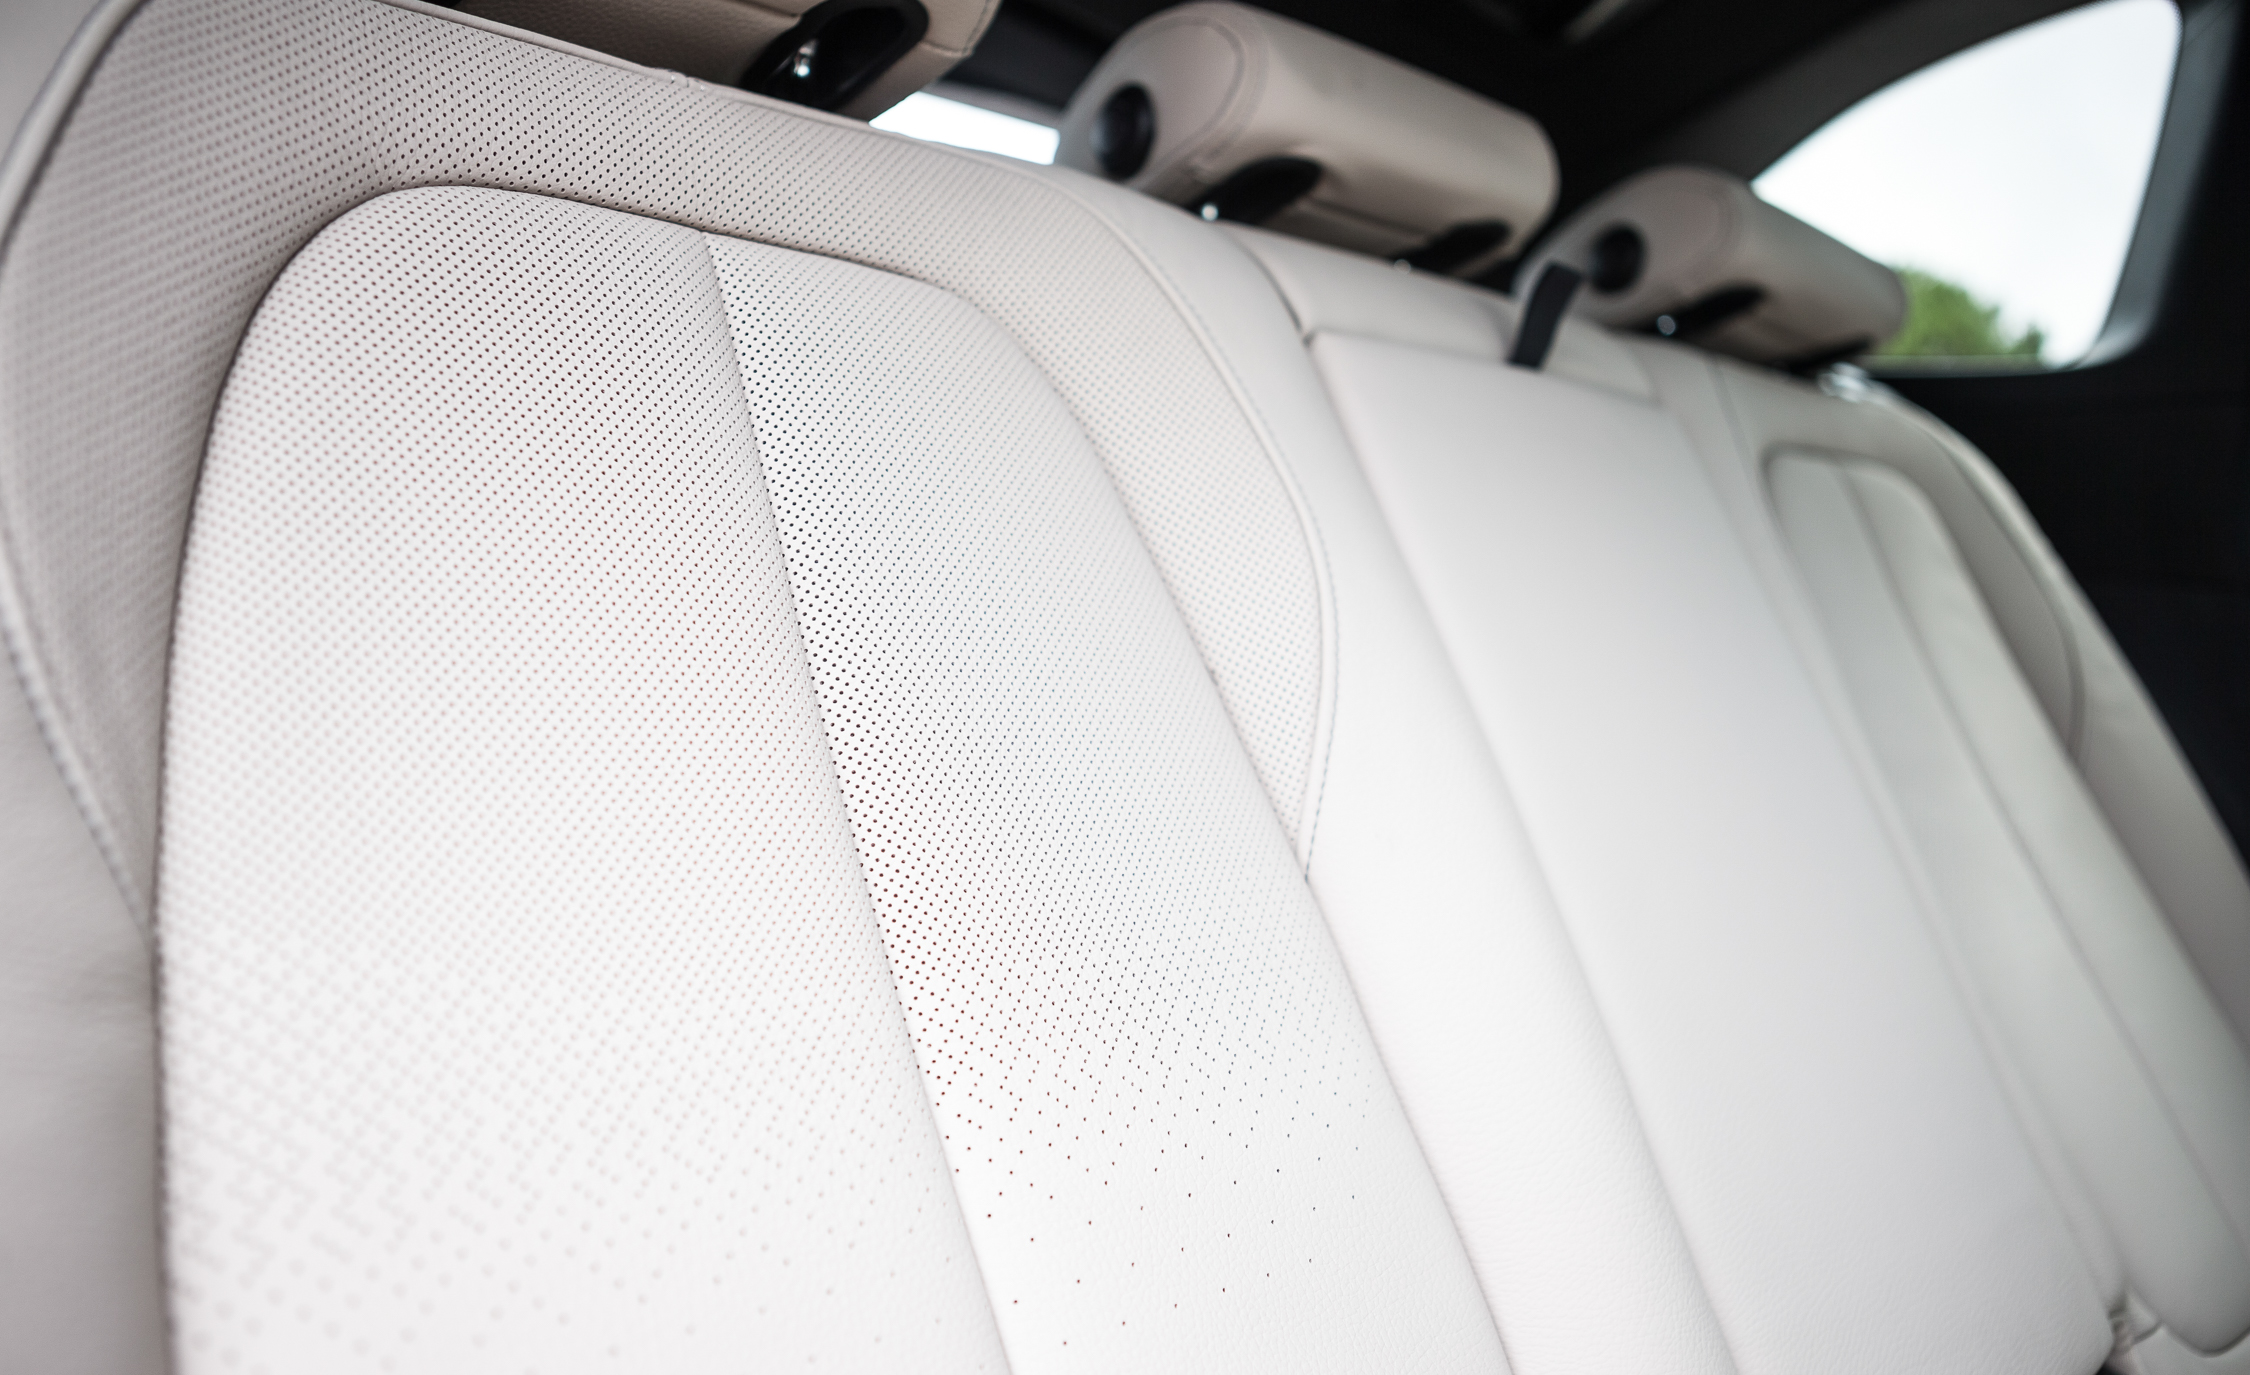 2016 BMW X1 Interior Seats Rear Leather Details (View 21 of 36)